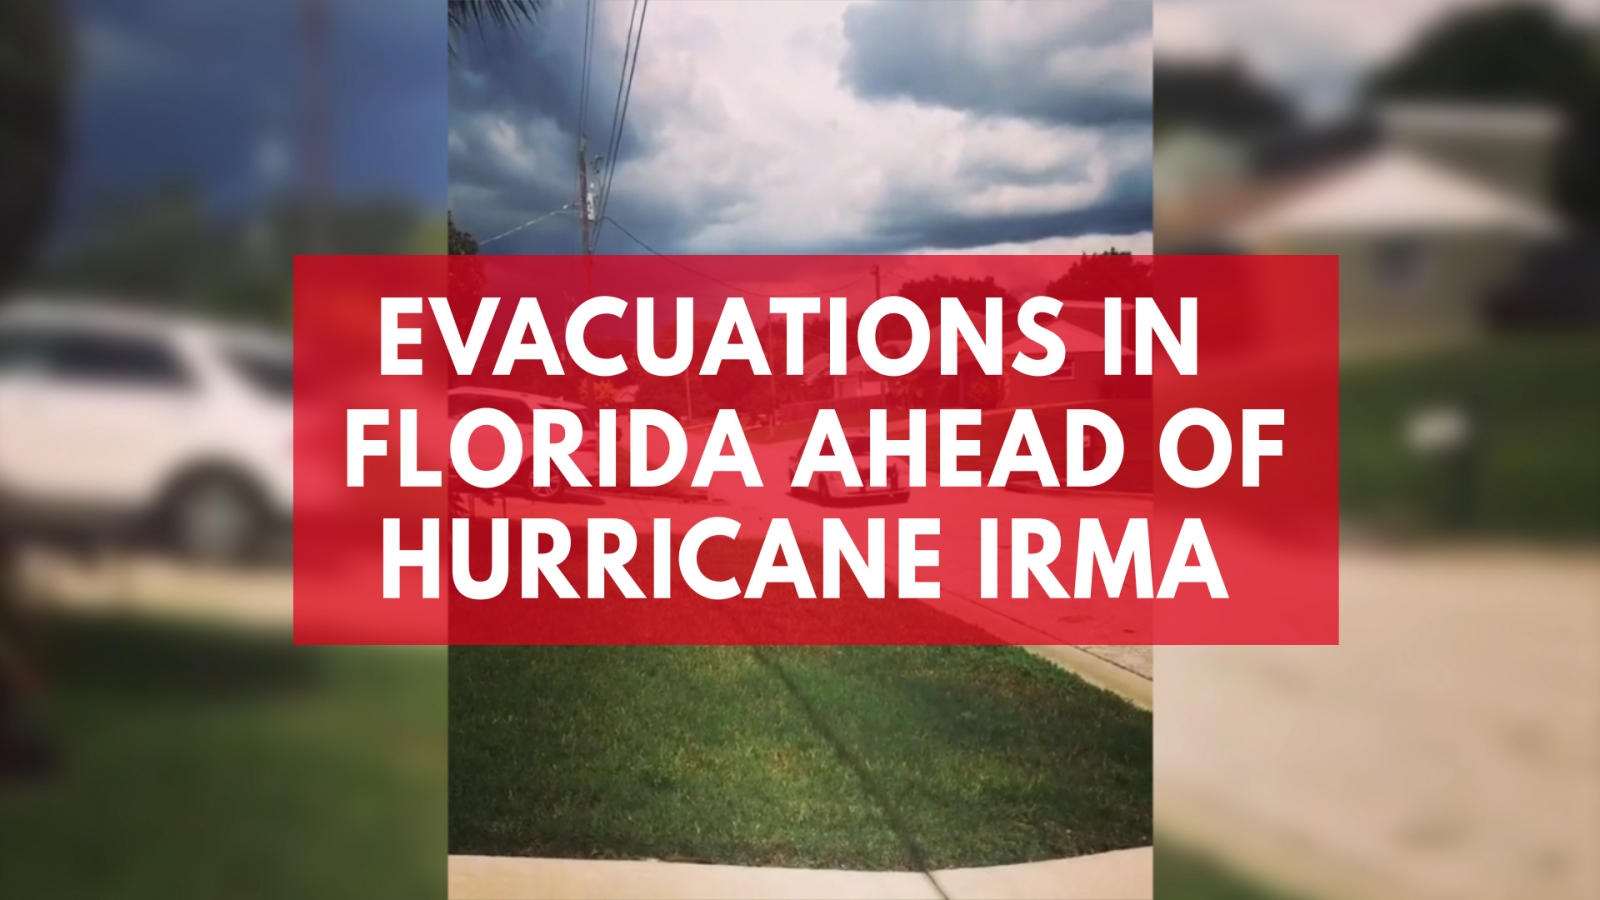 evacuations-in-florida-ahead-of-hurricane-irma